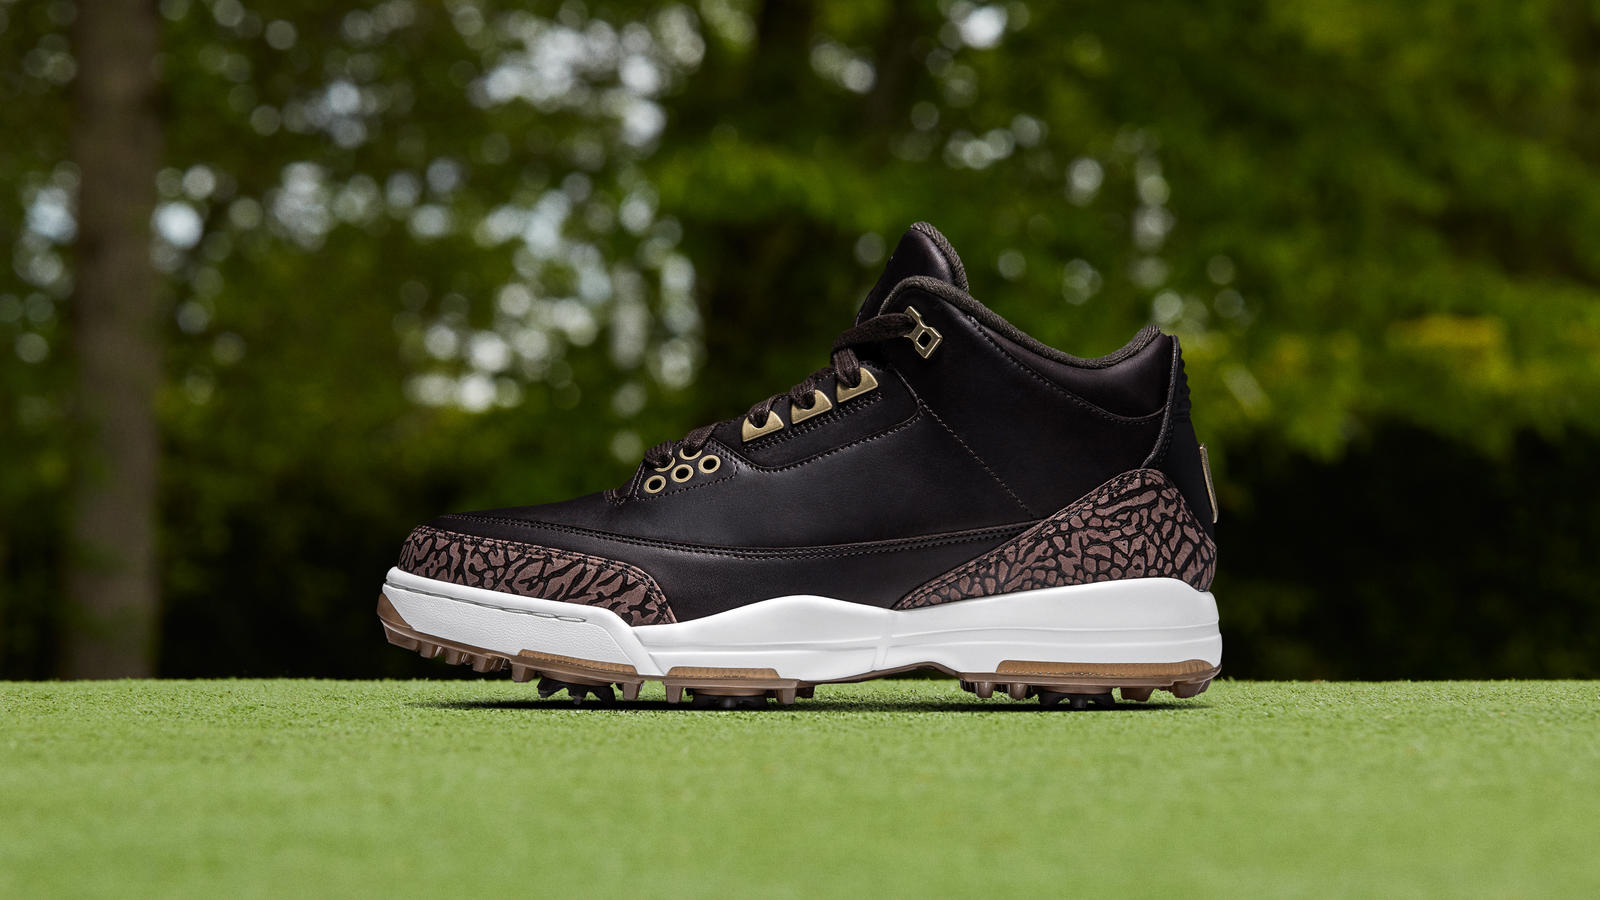 5b57c0f92d1419 Air Jordan III Golf Premium - Nike News